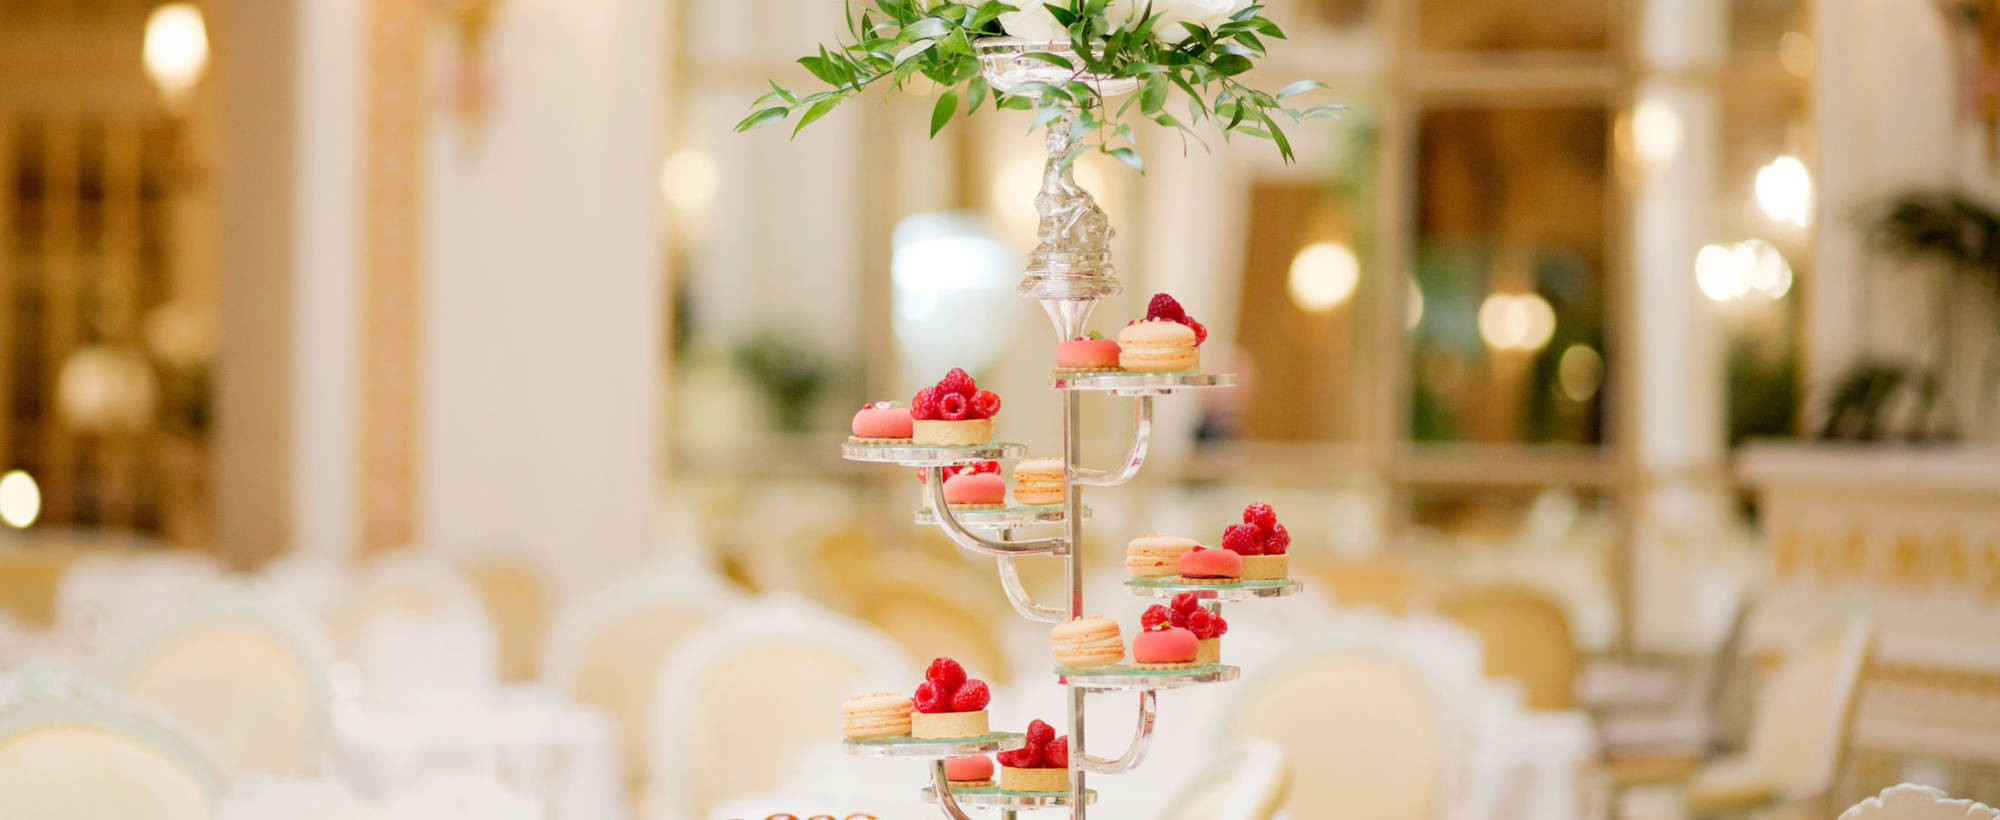 Afternoon Tea cake stand x5